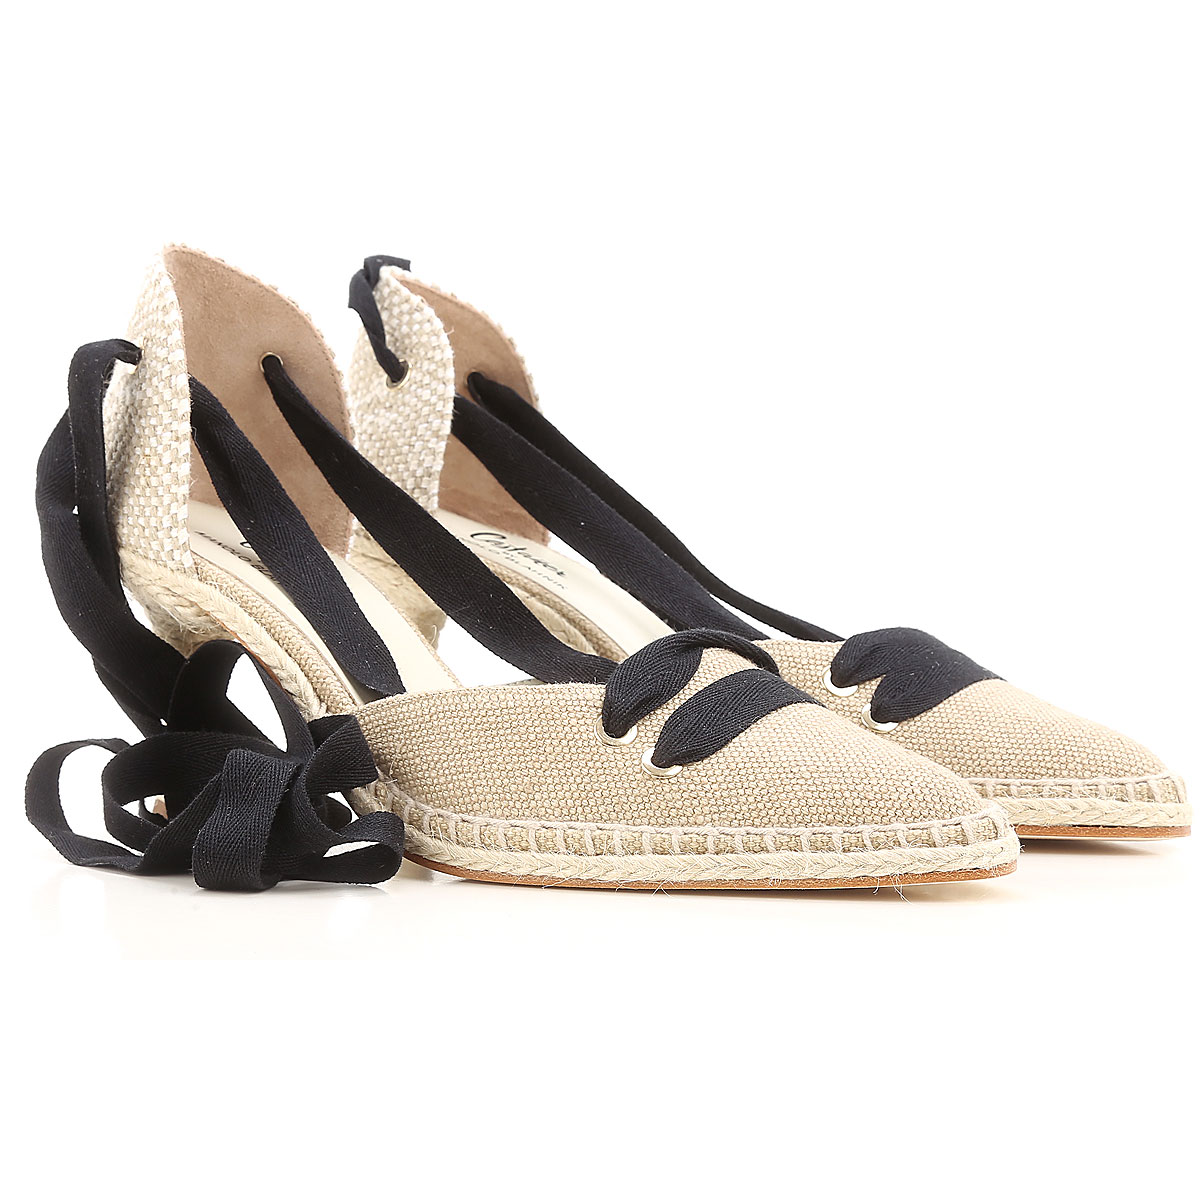 Castaner Sandals for Women On Sale in Outlet, By Manolo Blahnik, Rope, Fabric, 2019, 5 6 7